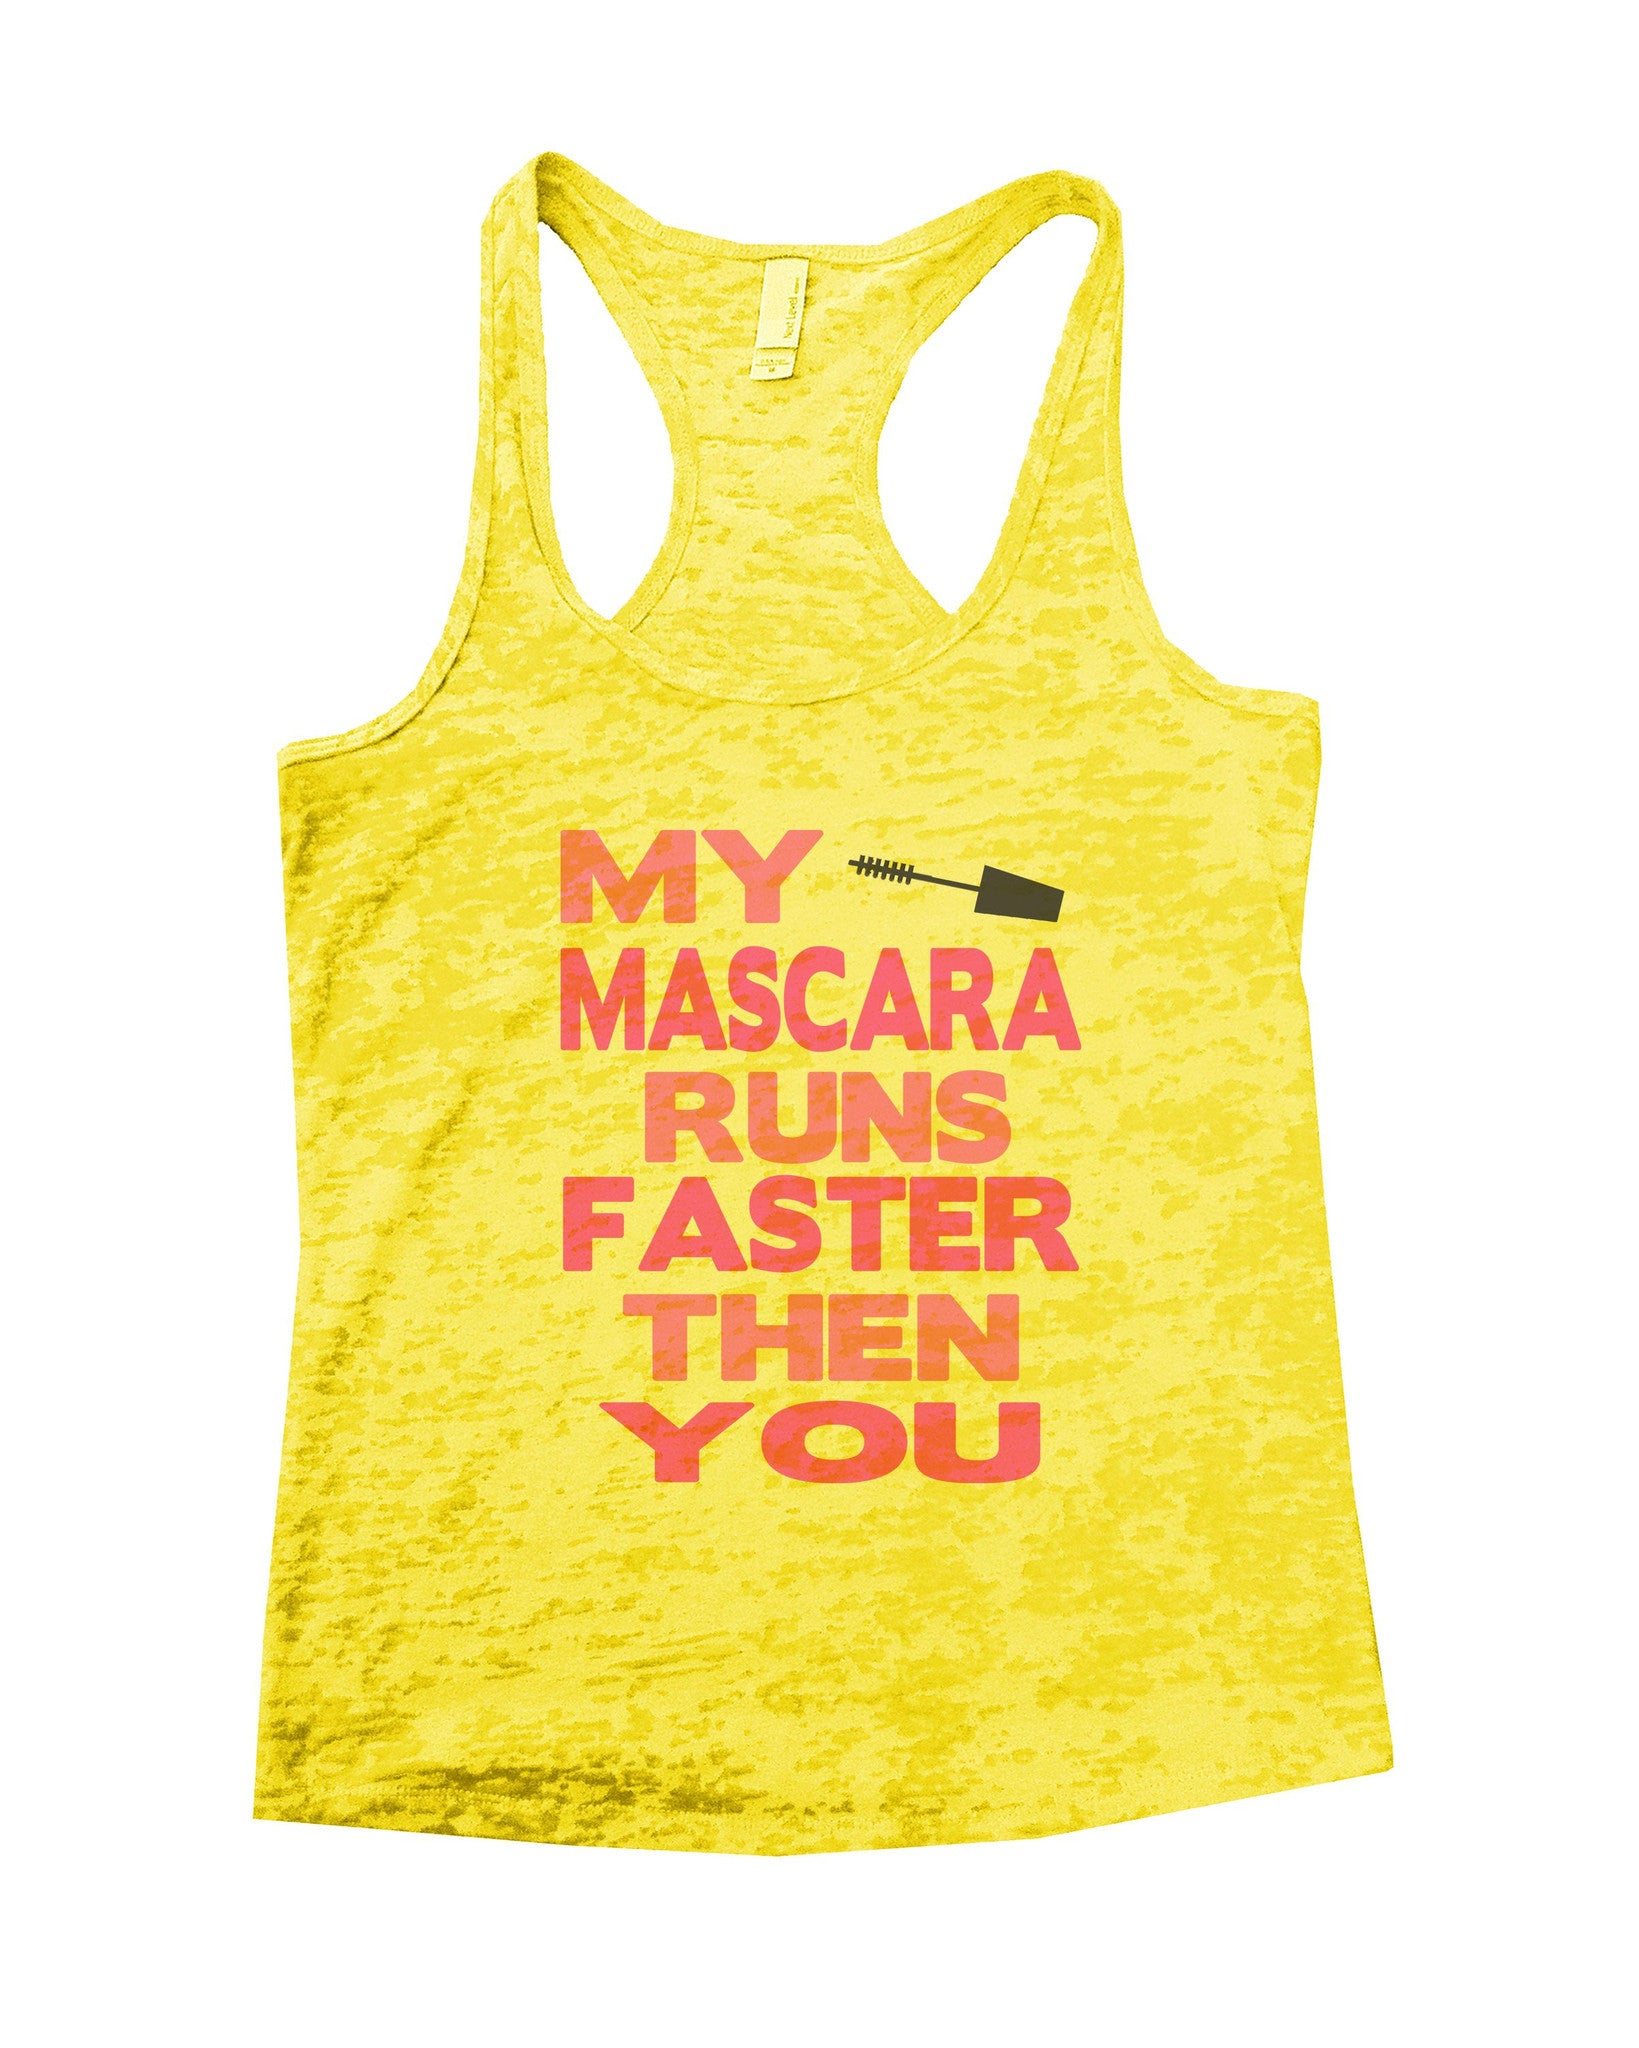 My Mascara Runs Faster Then You Burnout Tank Top By BurnoutTankTops.com - 641 - Funny Shirts Tank Tops Burnouts and Triblends  - 5